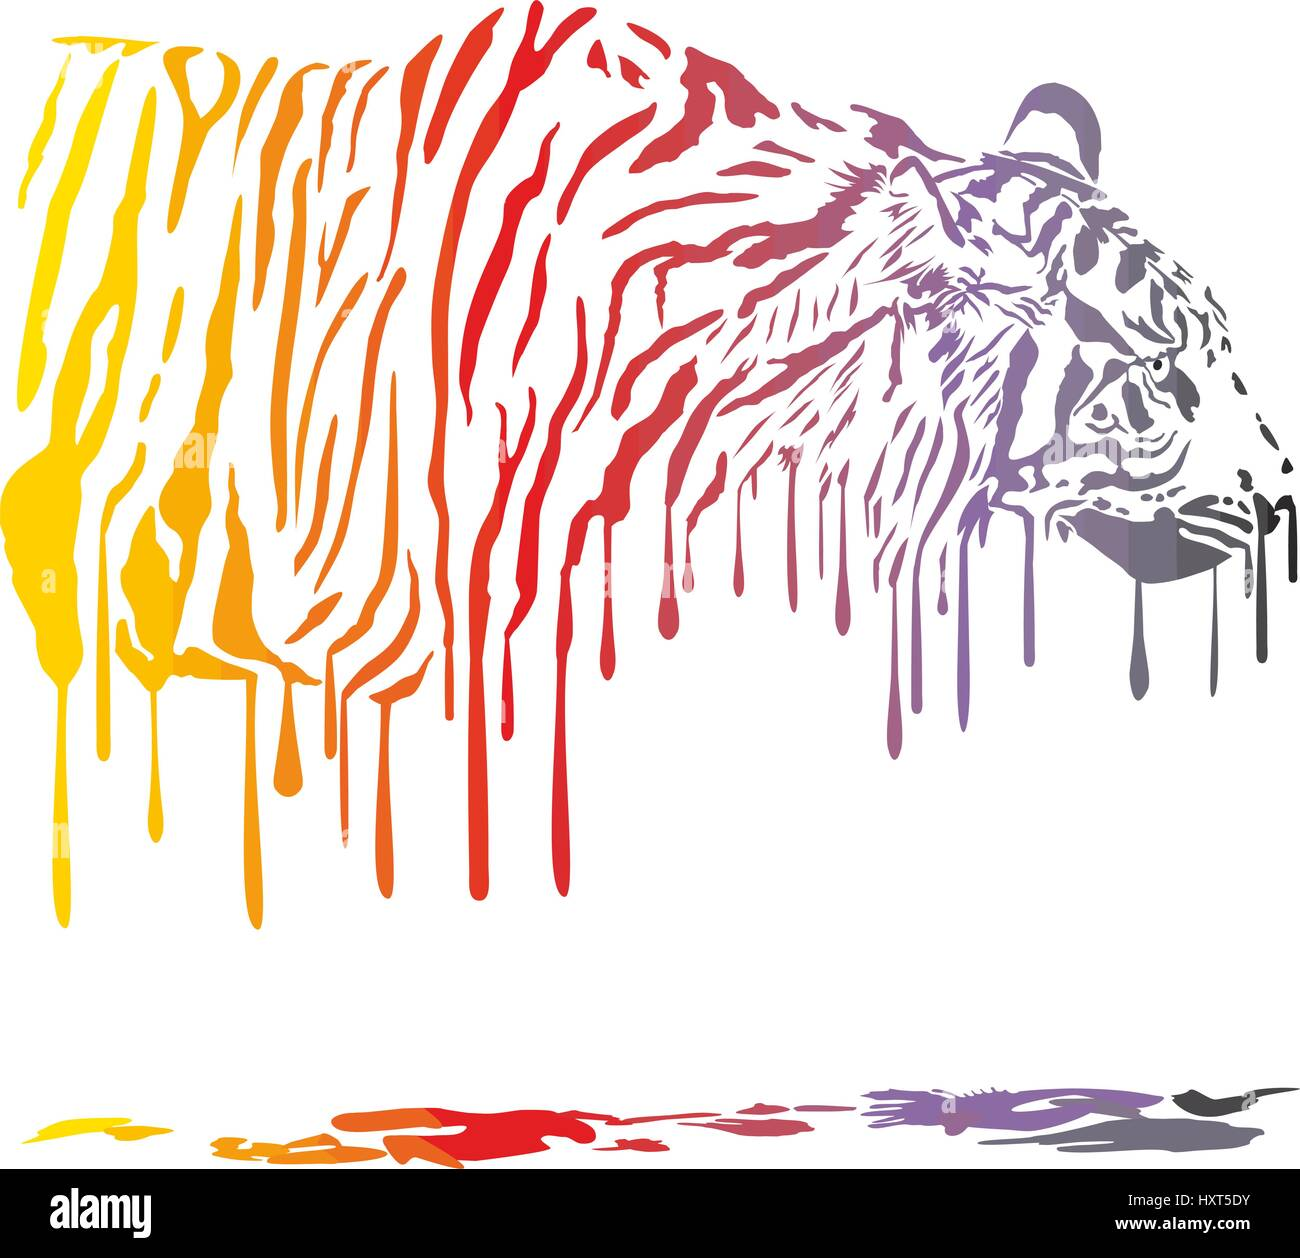 Tiger Abstract Painting - Stock Vector